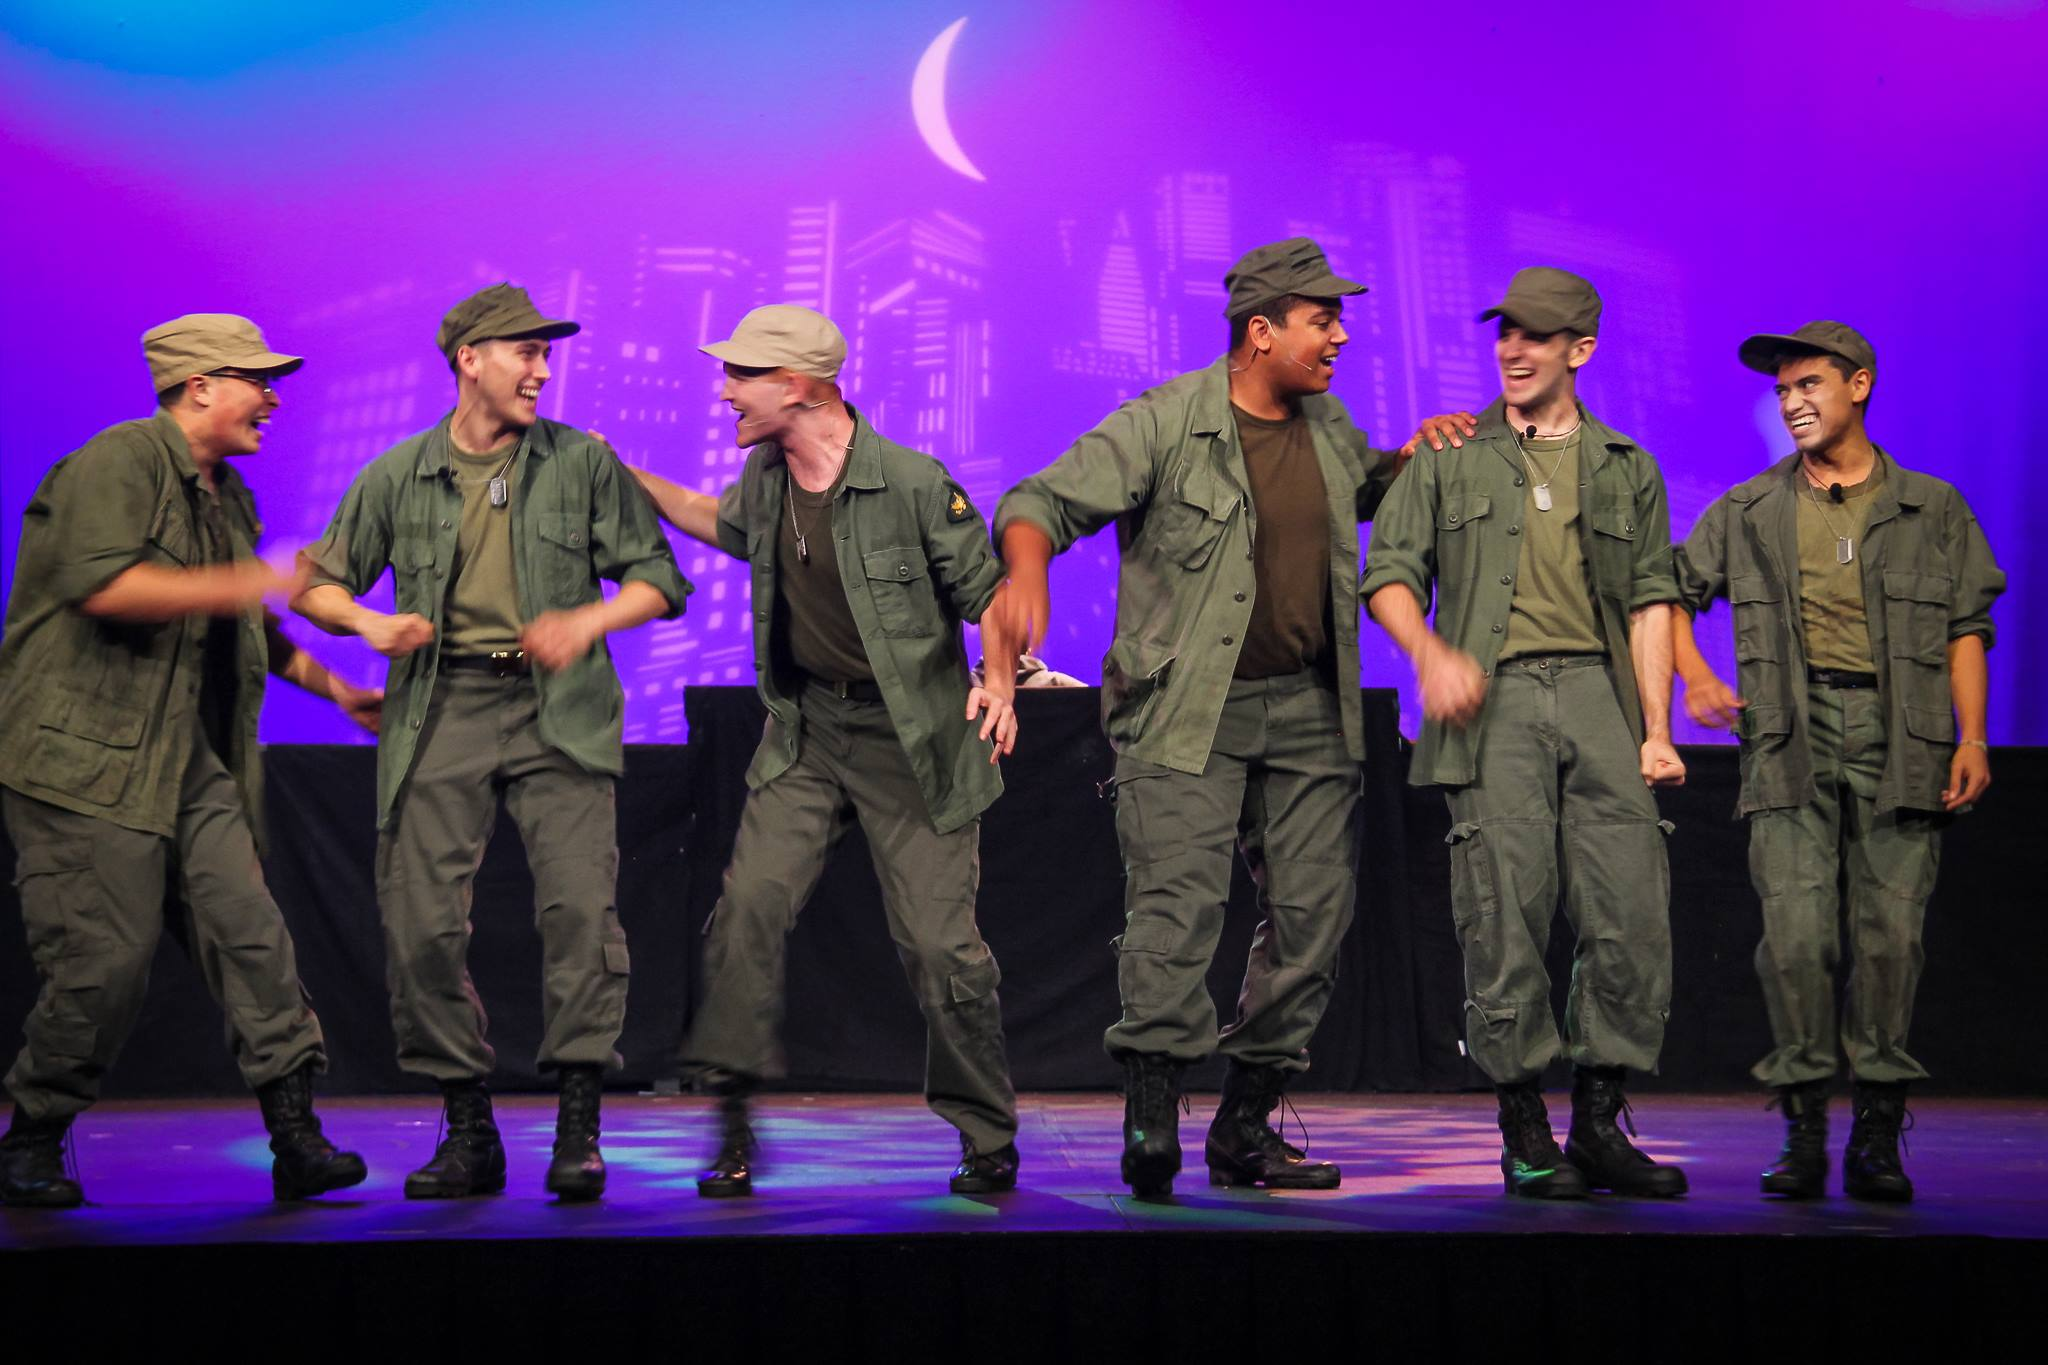 DOGFIGHT (musical)